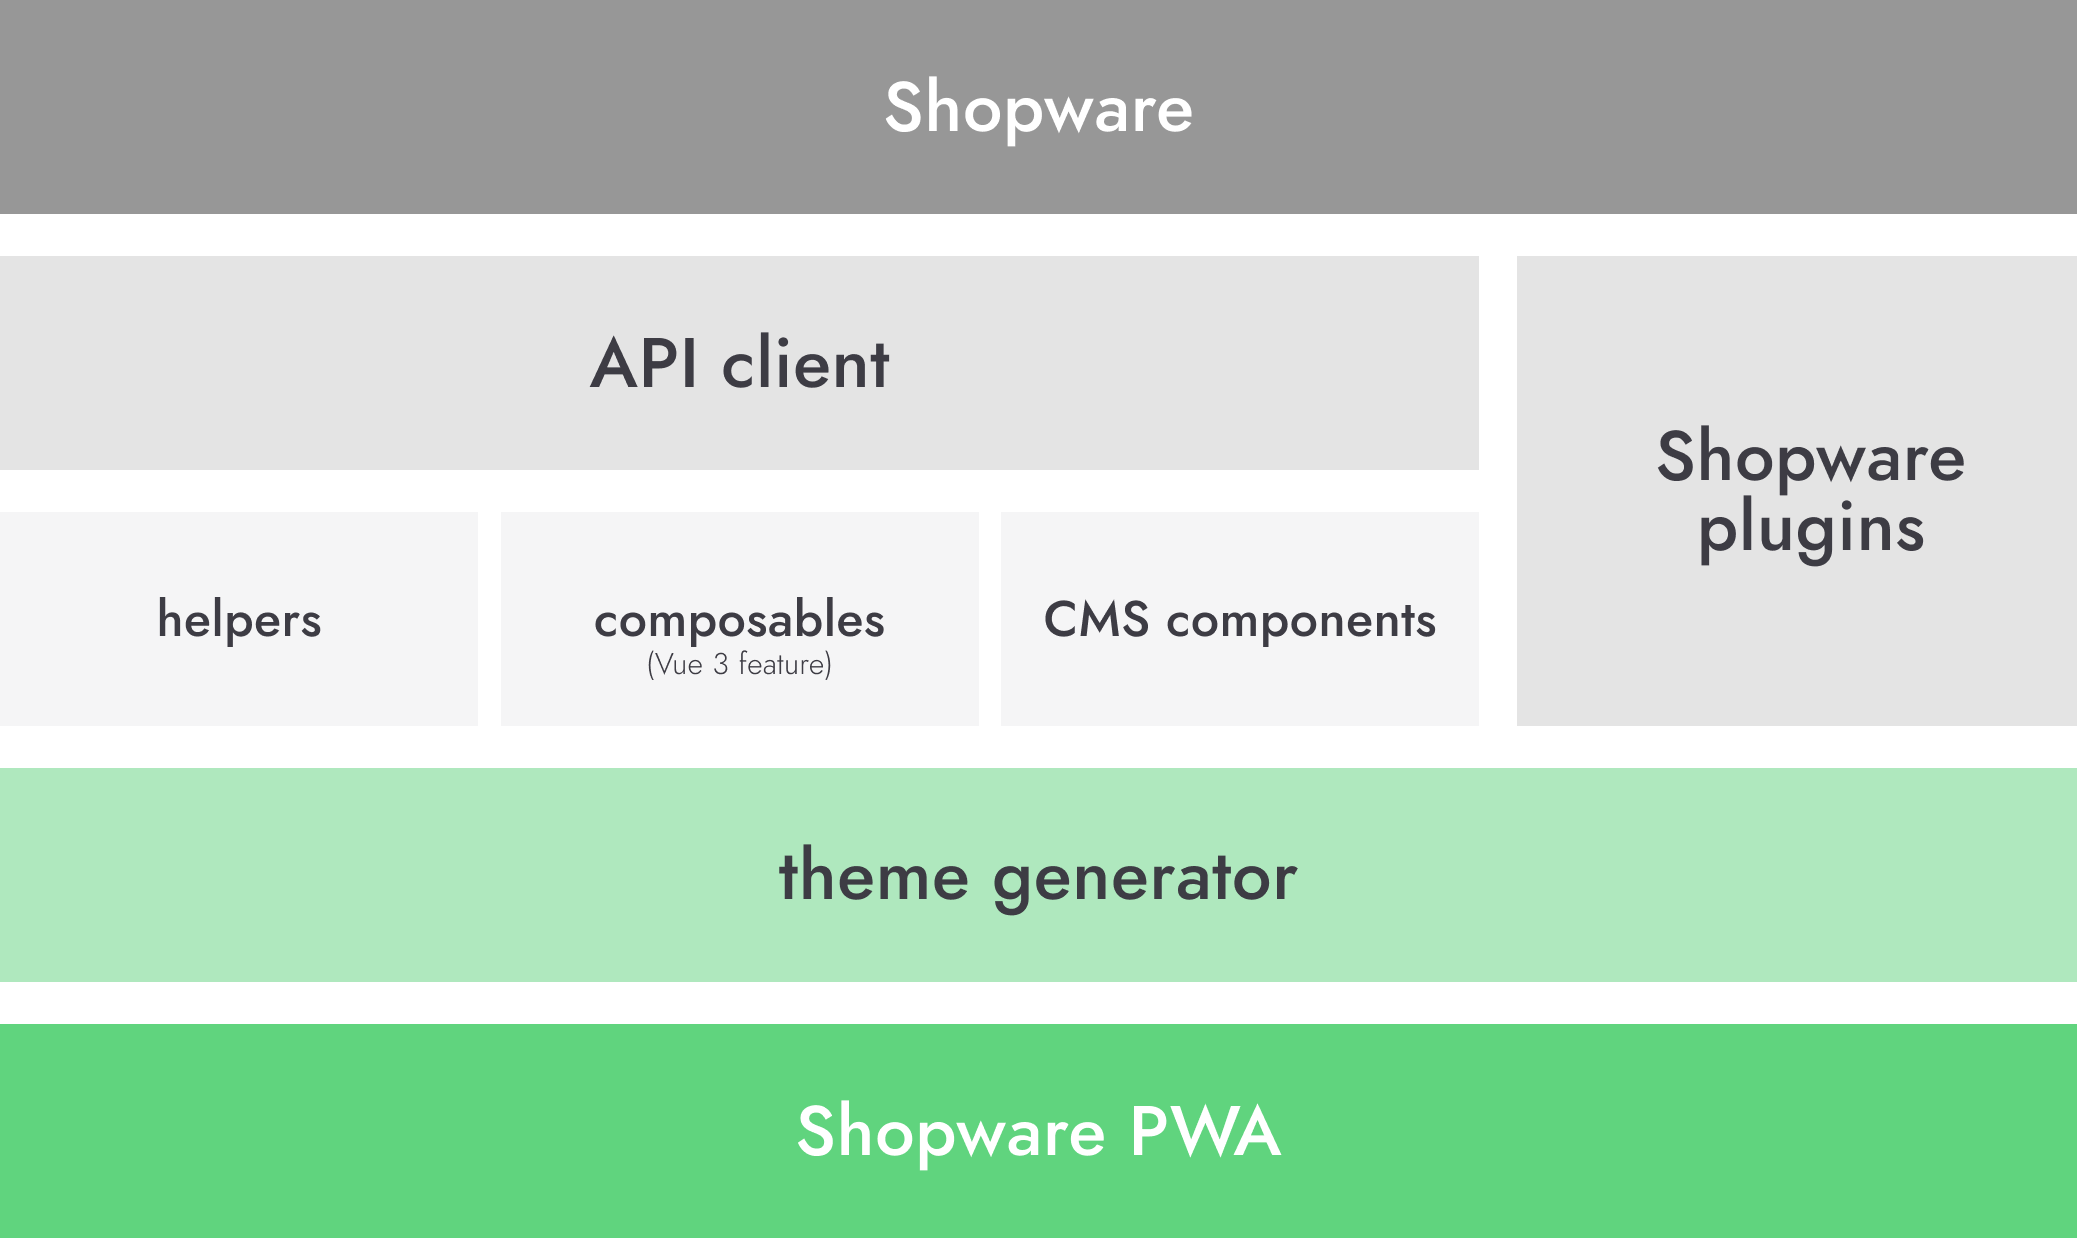 Shopware PWA architecture